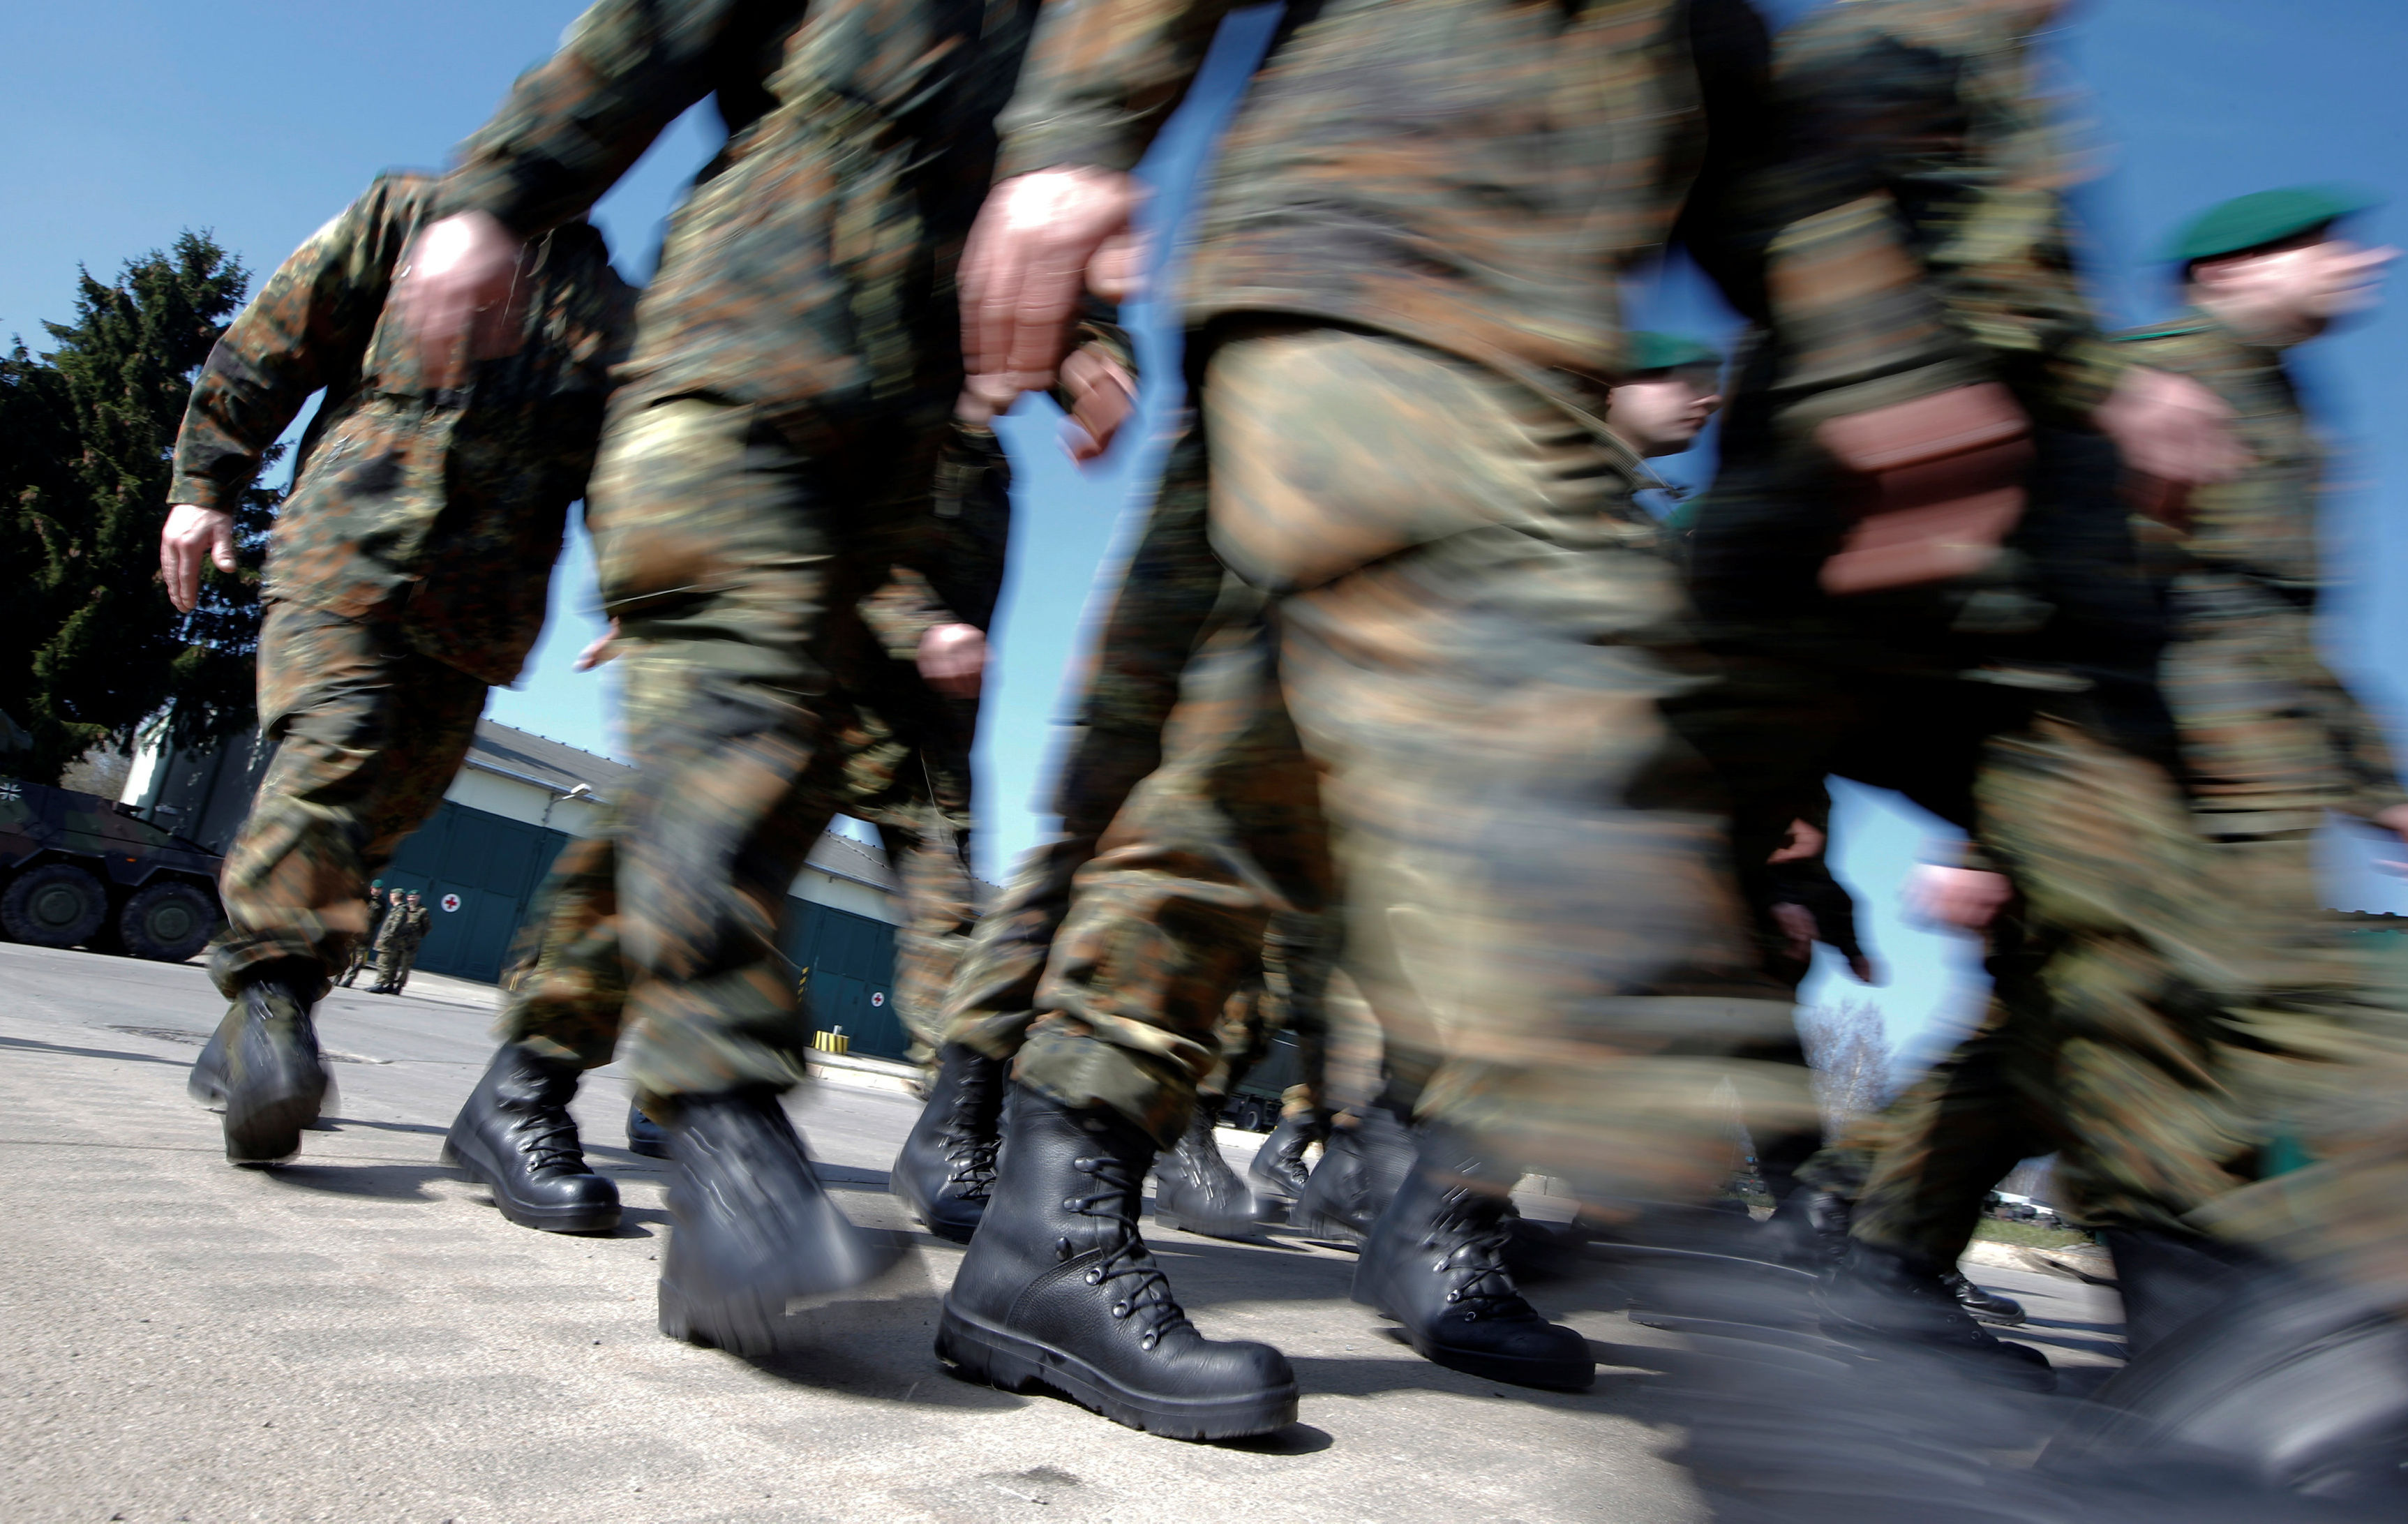 German Bundeswehr armed forces soldiers of the 371st armoured infantry battalion march during a media day of the NATO drill 'NOBLE JUMP 2015' at the barracks in Marienberg April 10, 2015